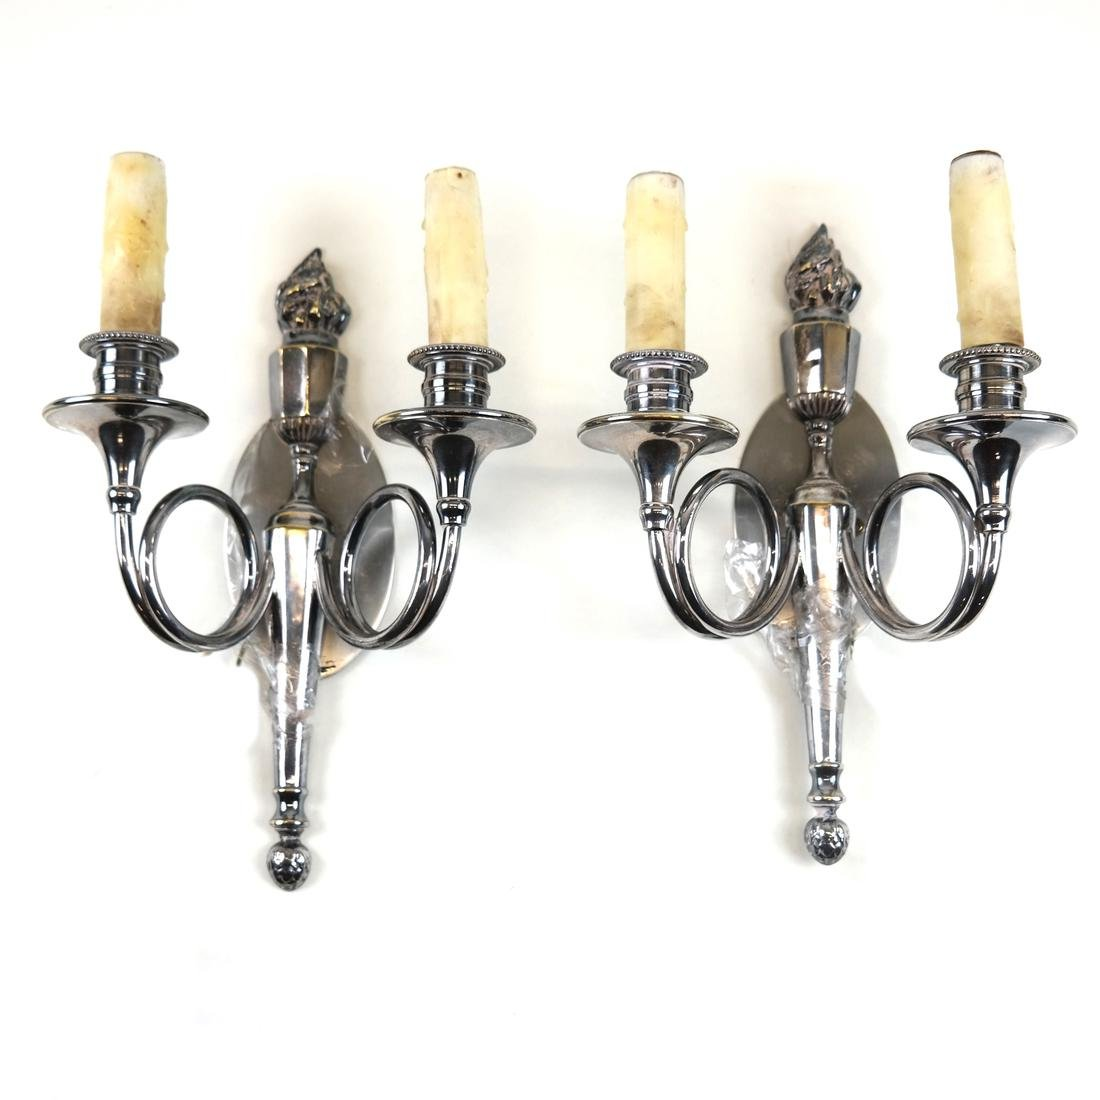 Pair of Torch-Form Sconces